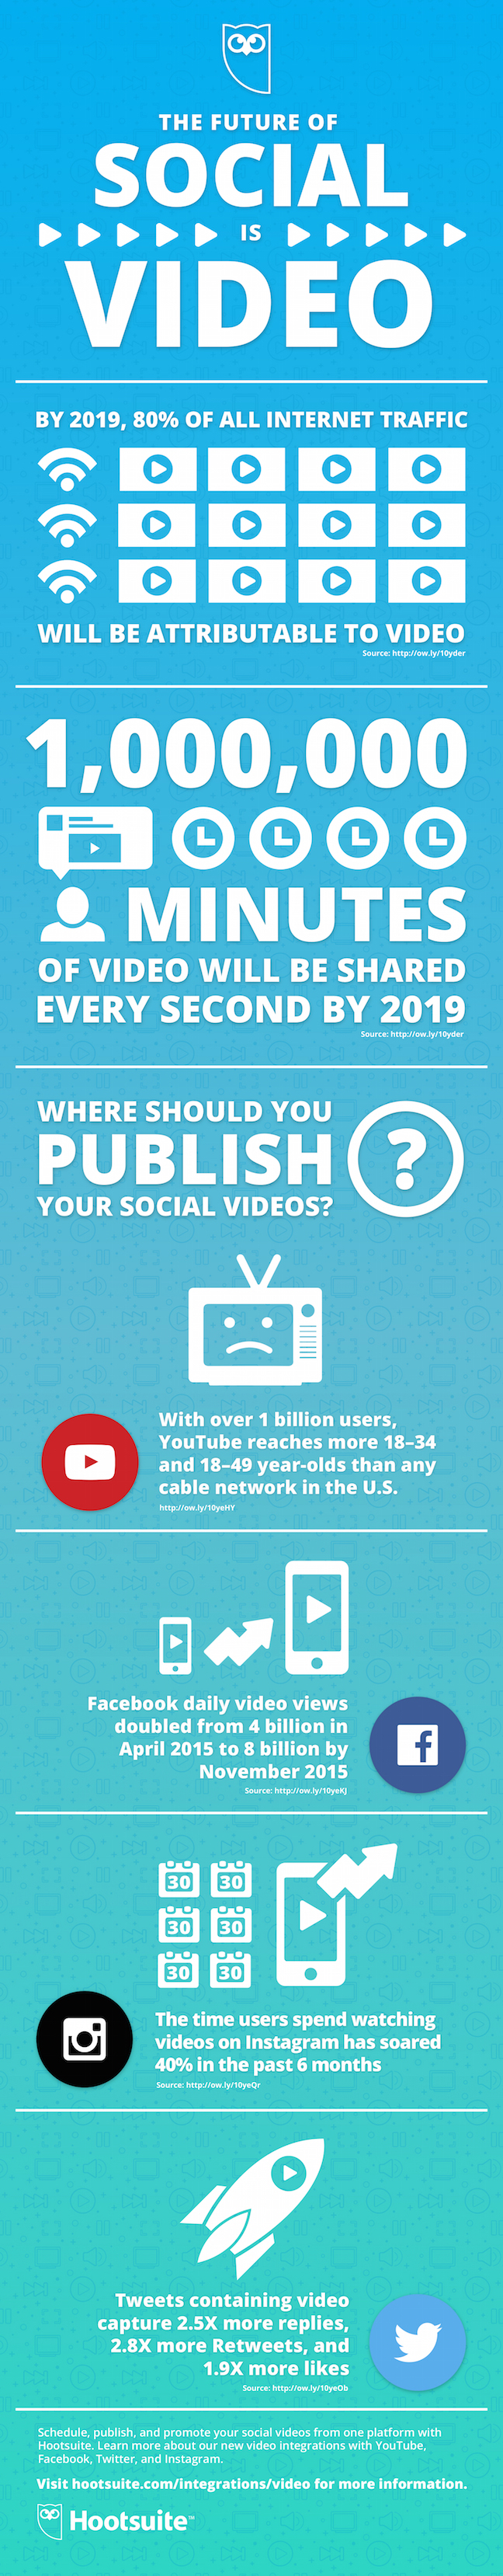 blog-SocialVideo-Infographic-v2